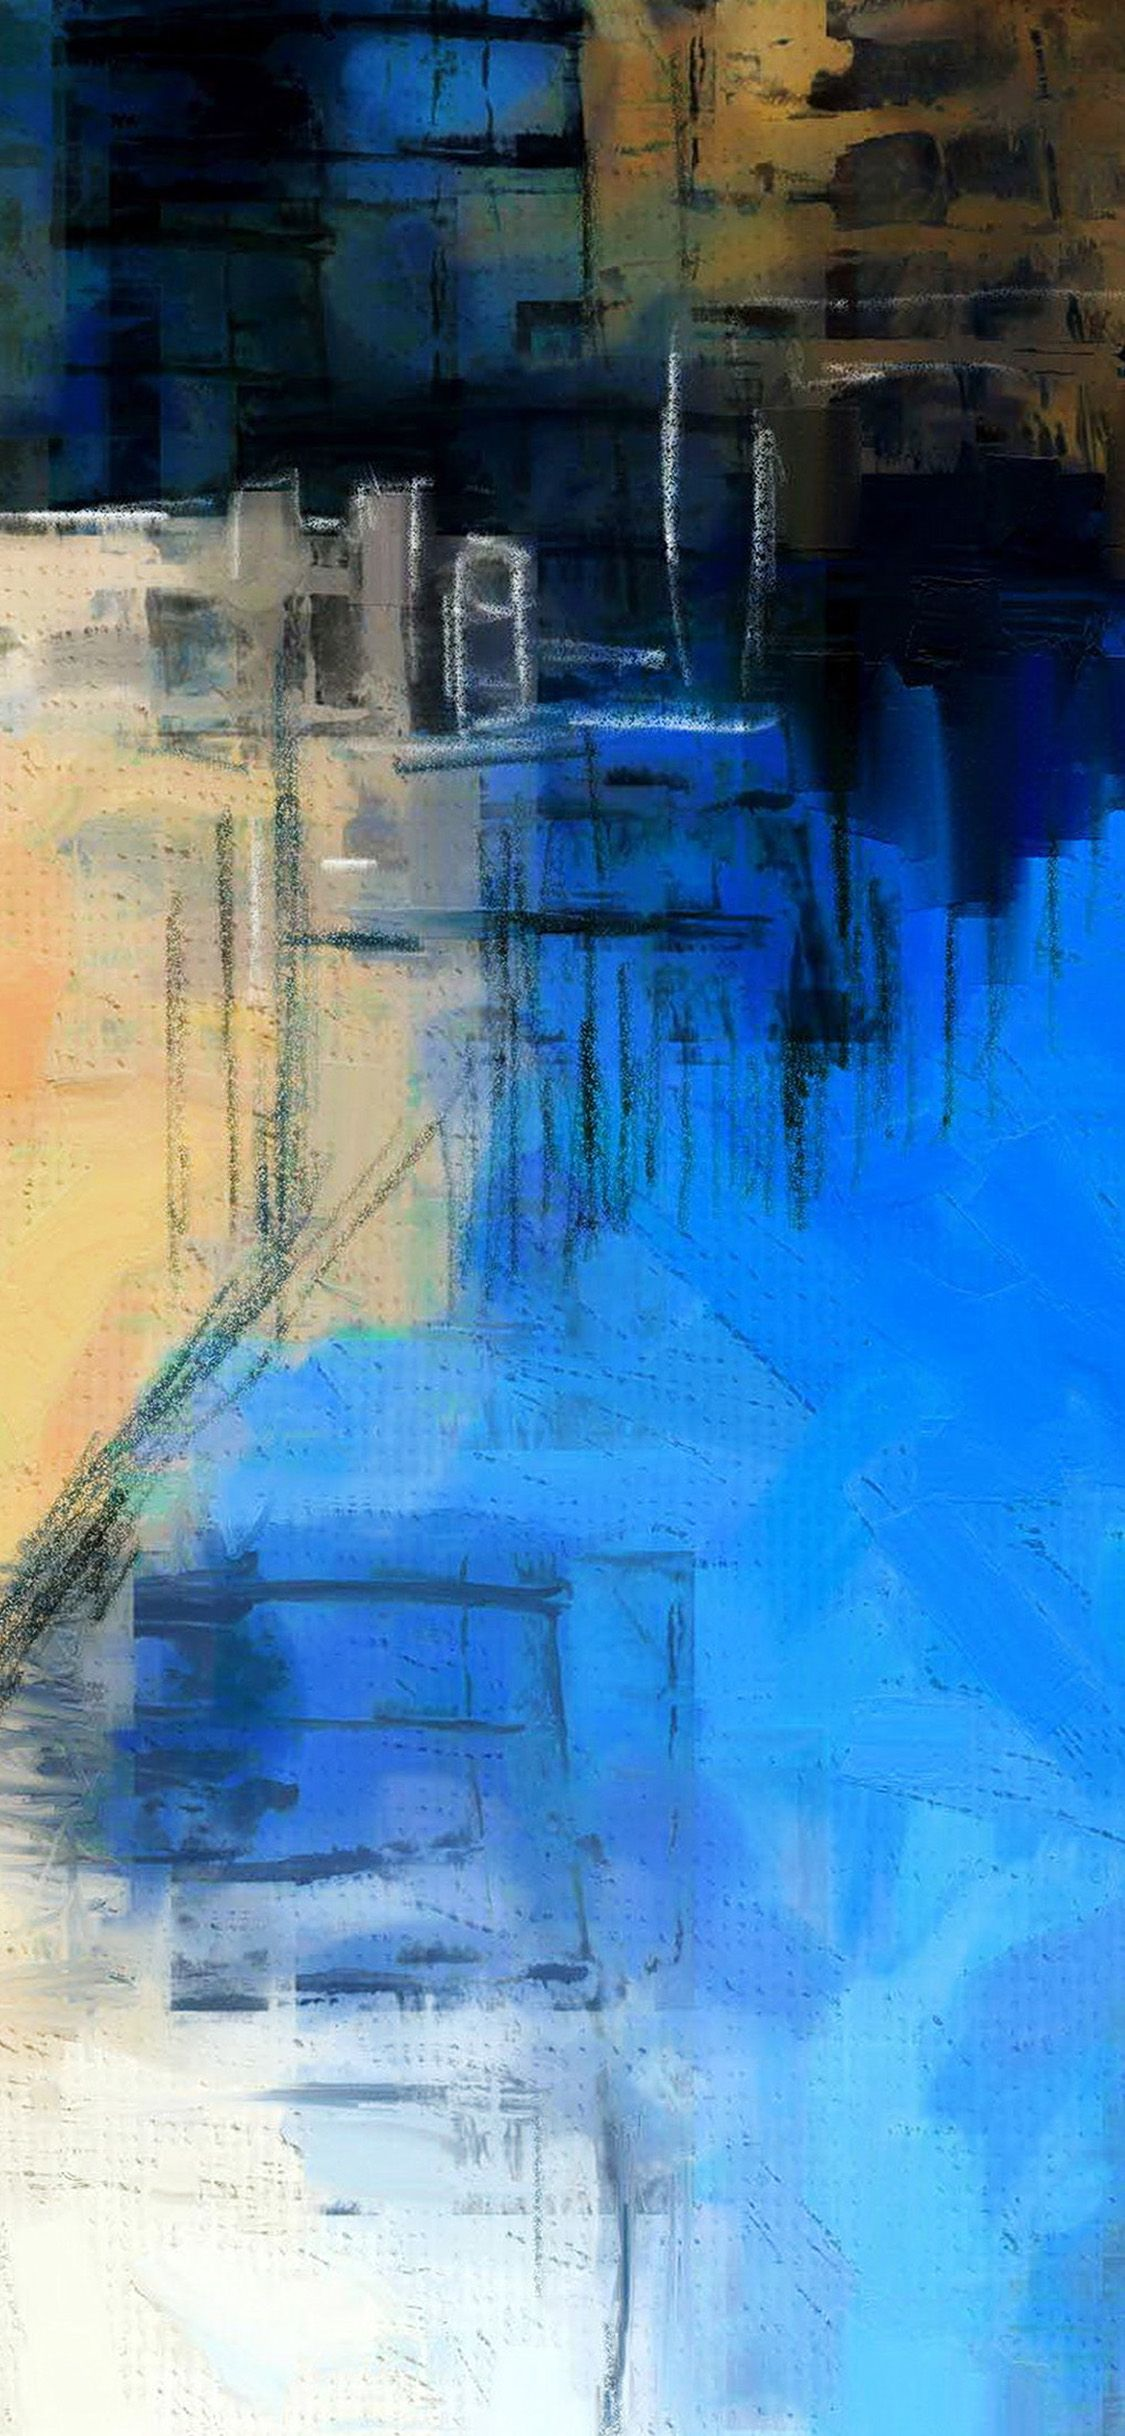 Abstract Art Iphone Wallpapers Top Free Abstract Art